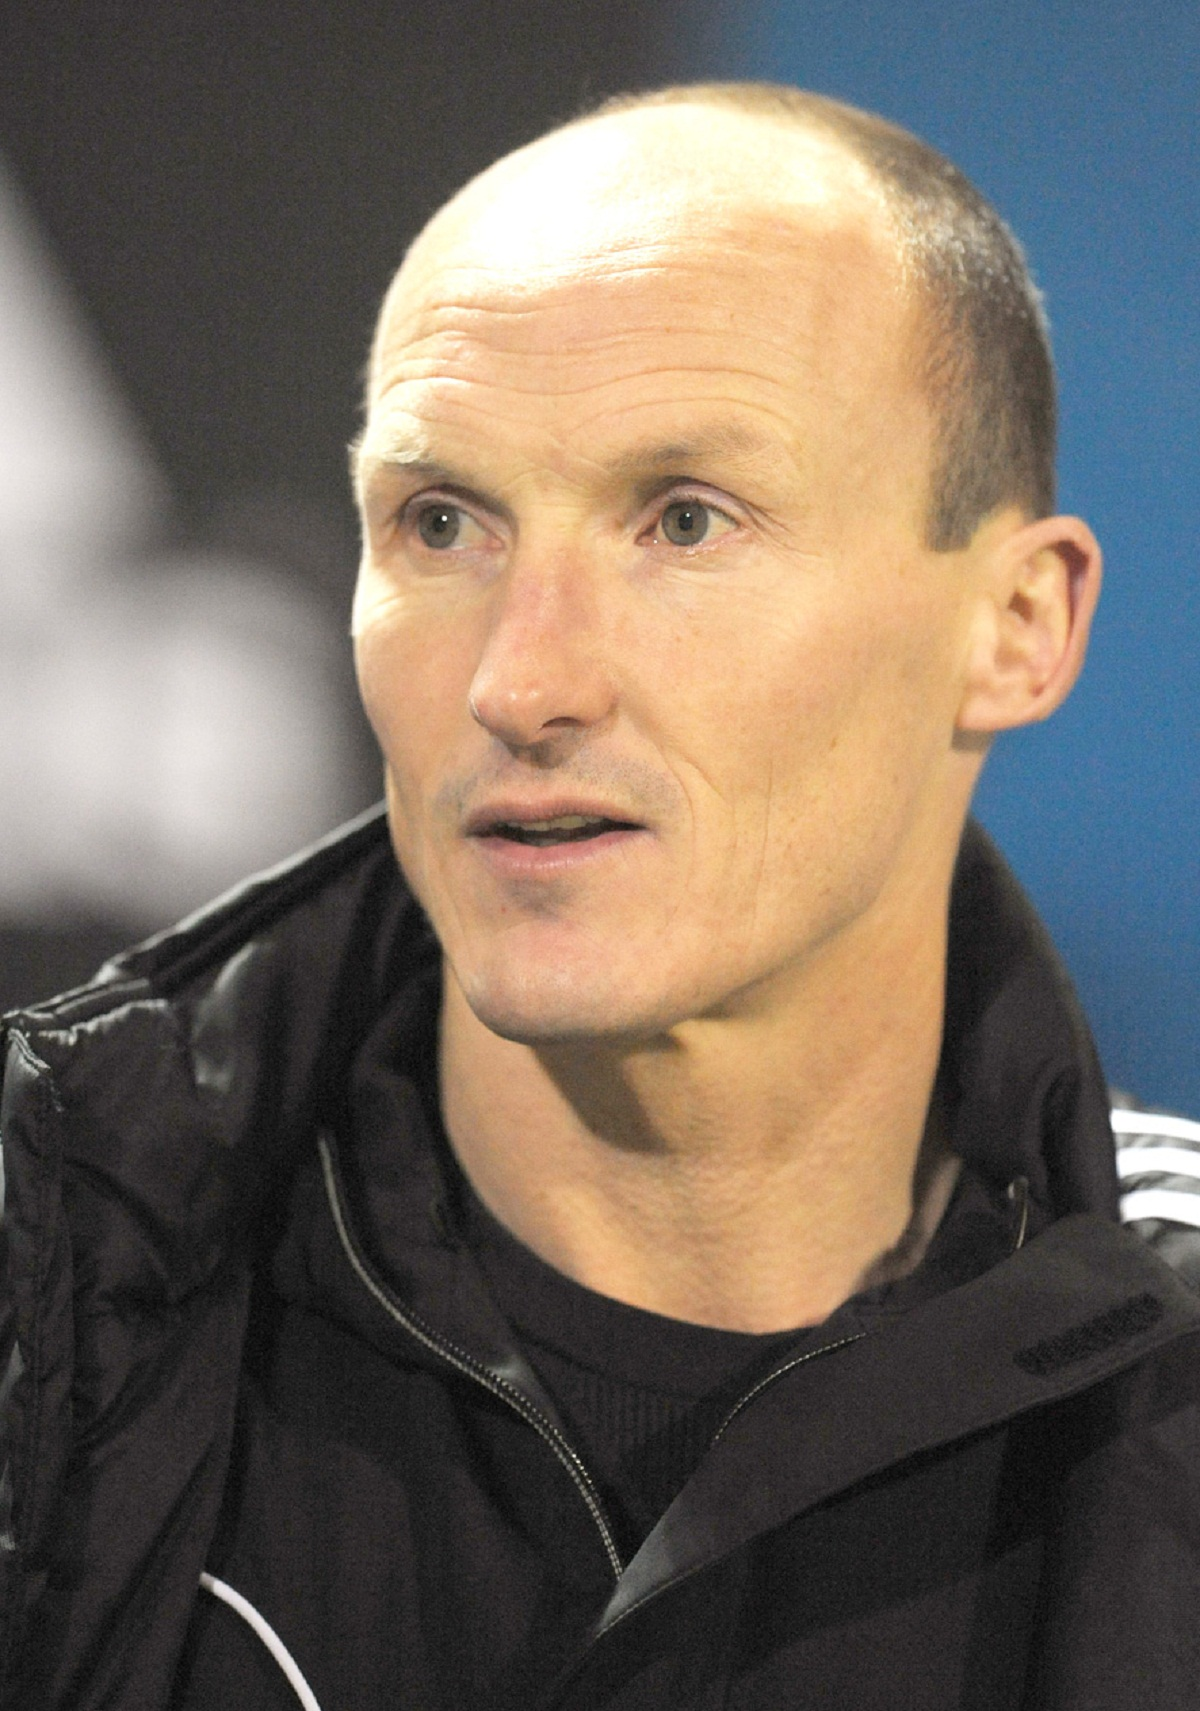 Wanderers Under-18s coach David Lee